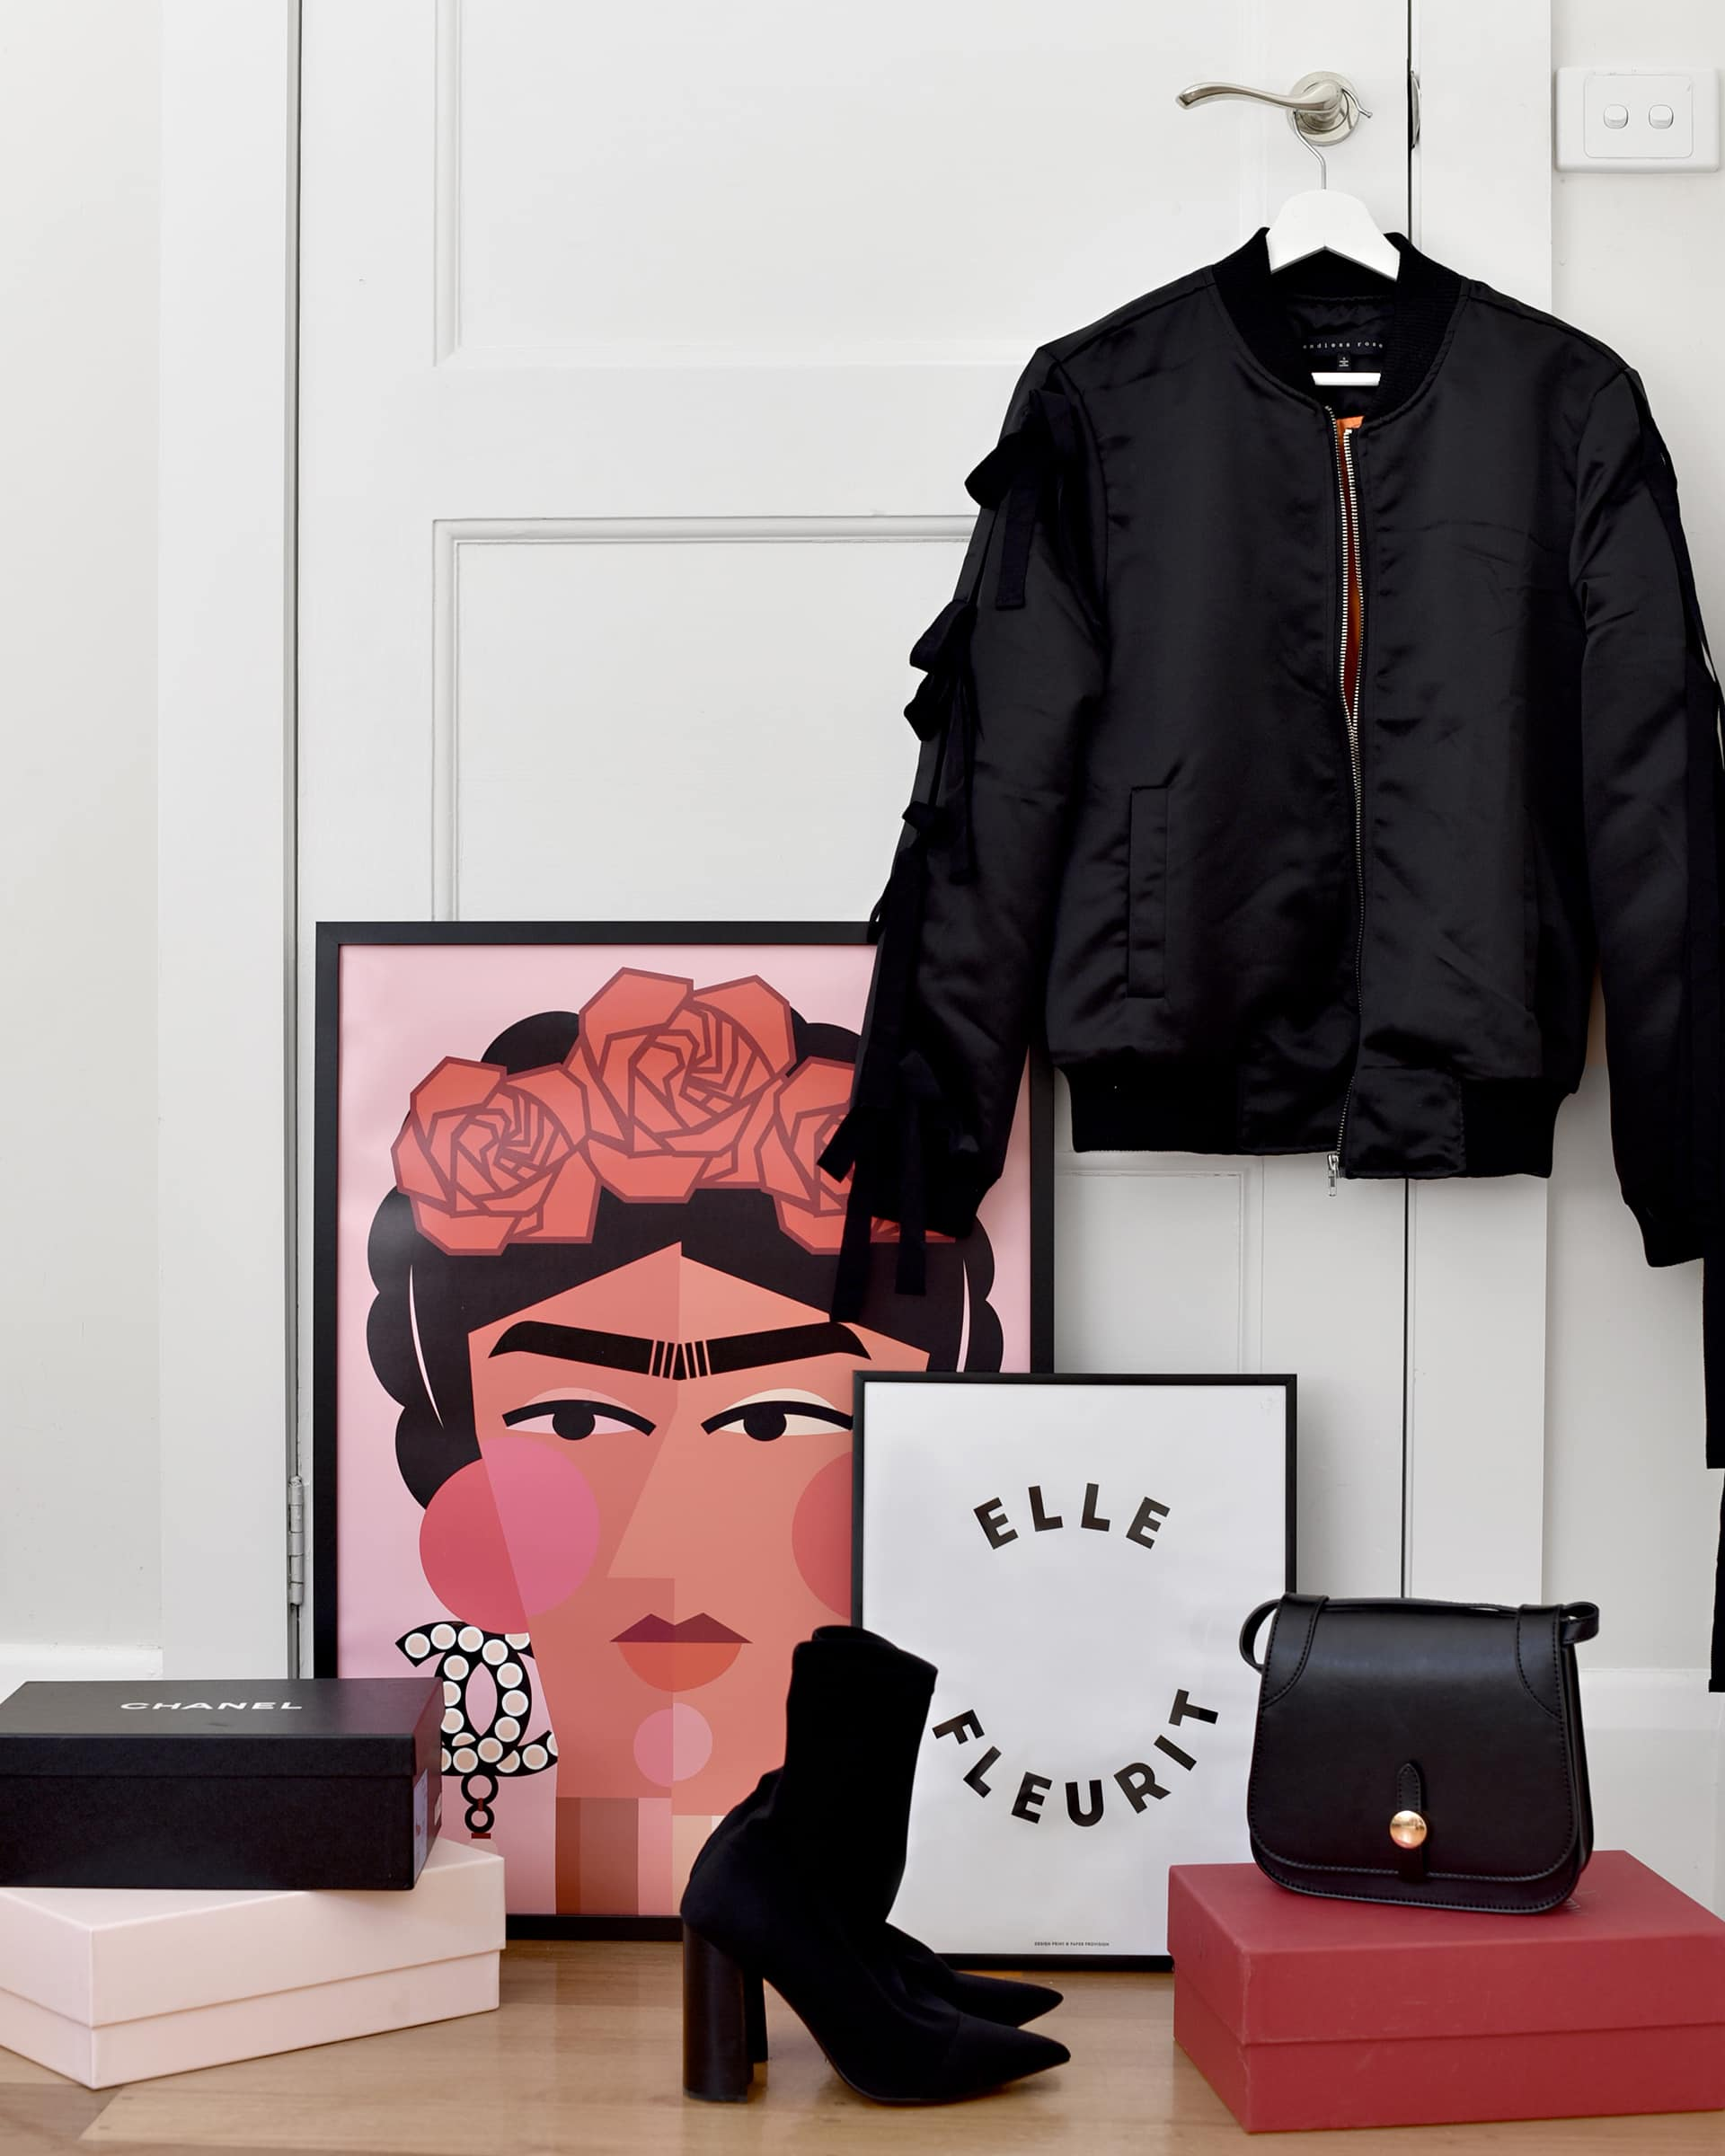 Frida artwork leaning against white wall with leather jacket